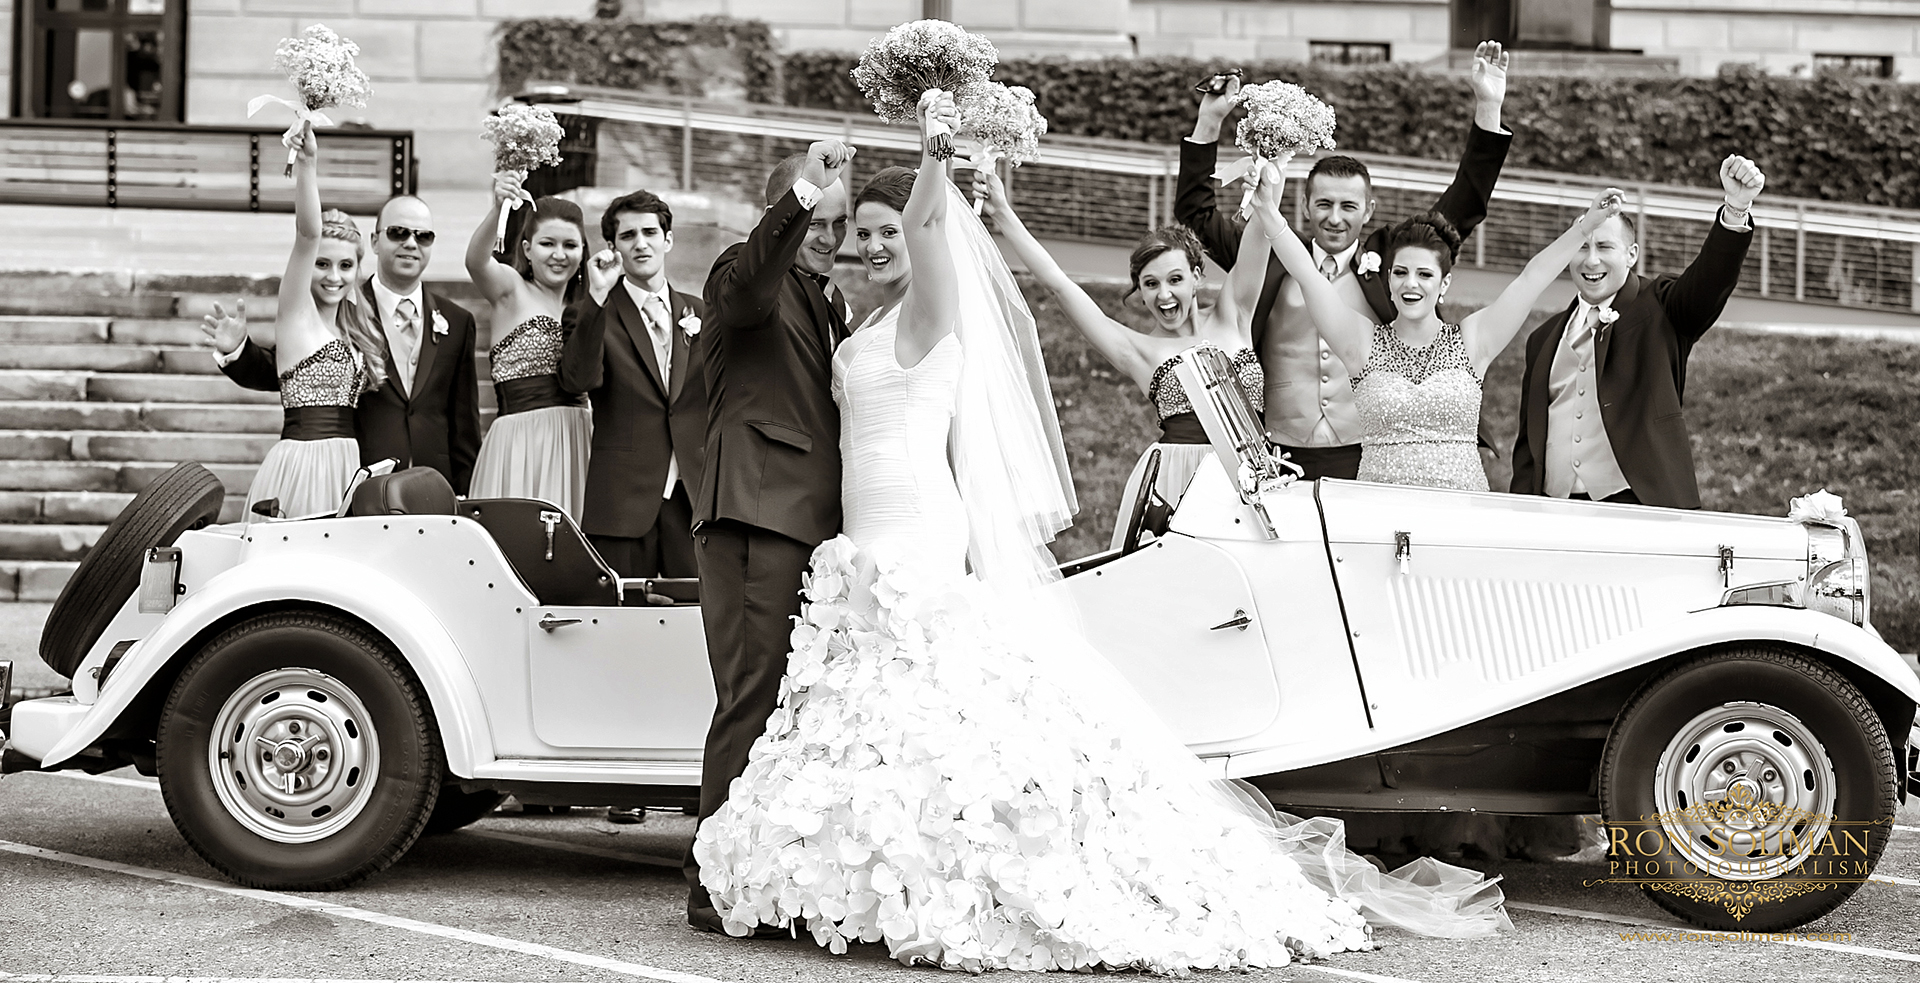 1952 MG wedding car